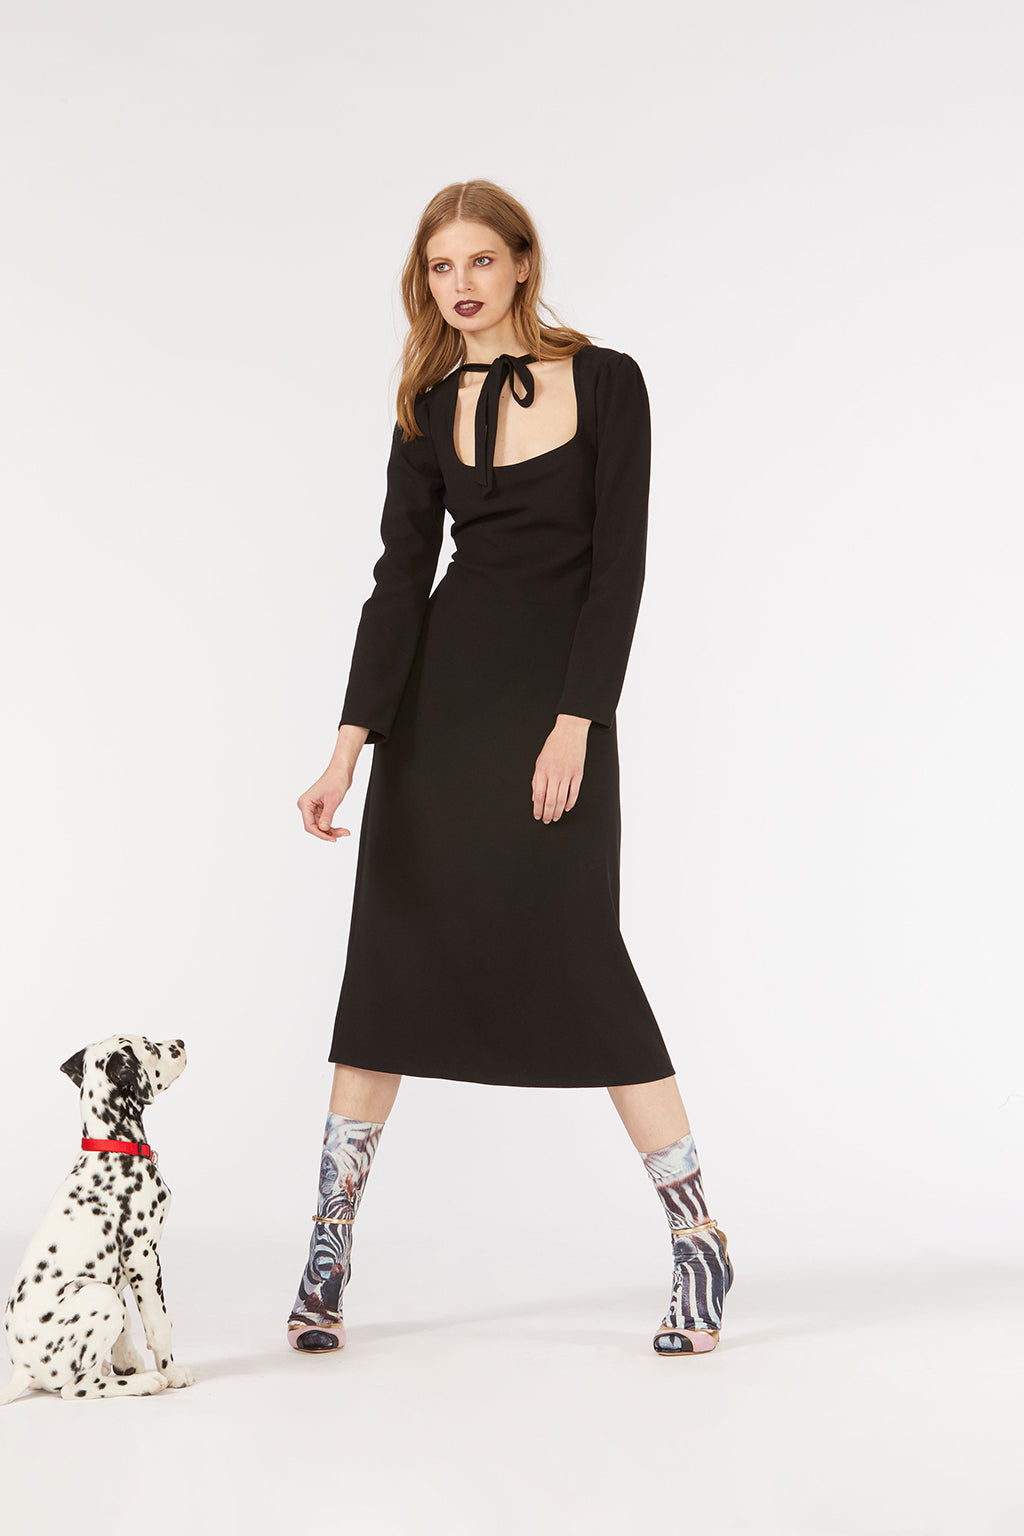 Cynthia Rowley Fall 2018 look 19 featuring a black scoop neck long sleeve midi dress with neck tie detail.